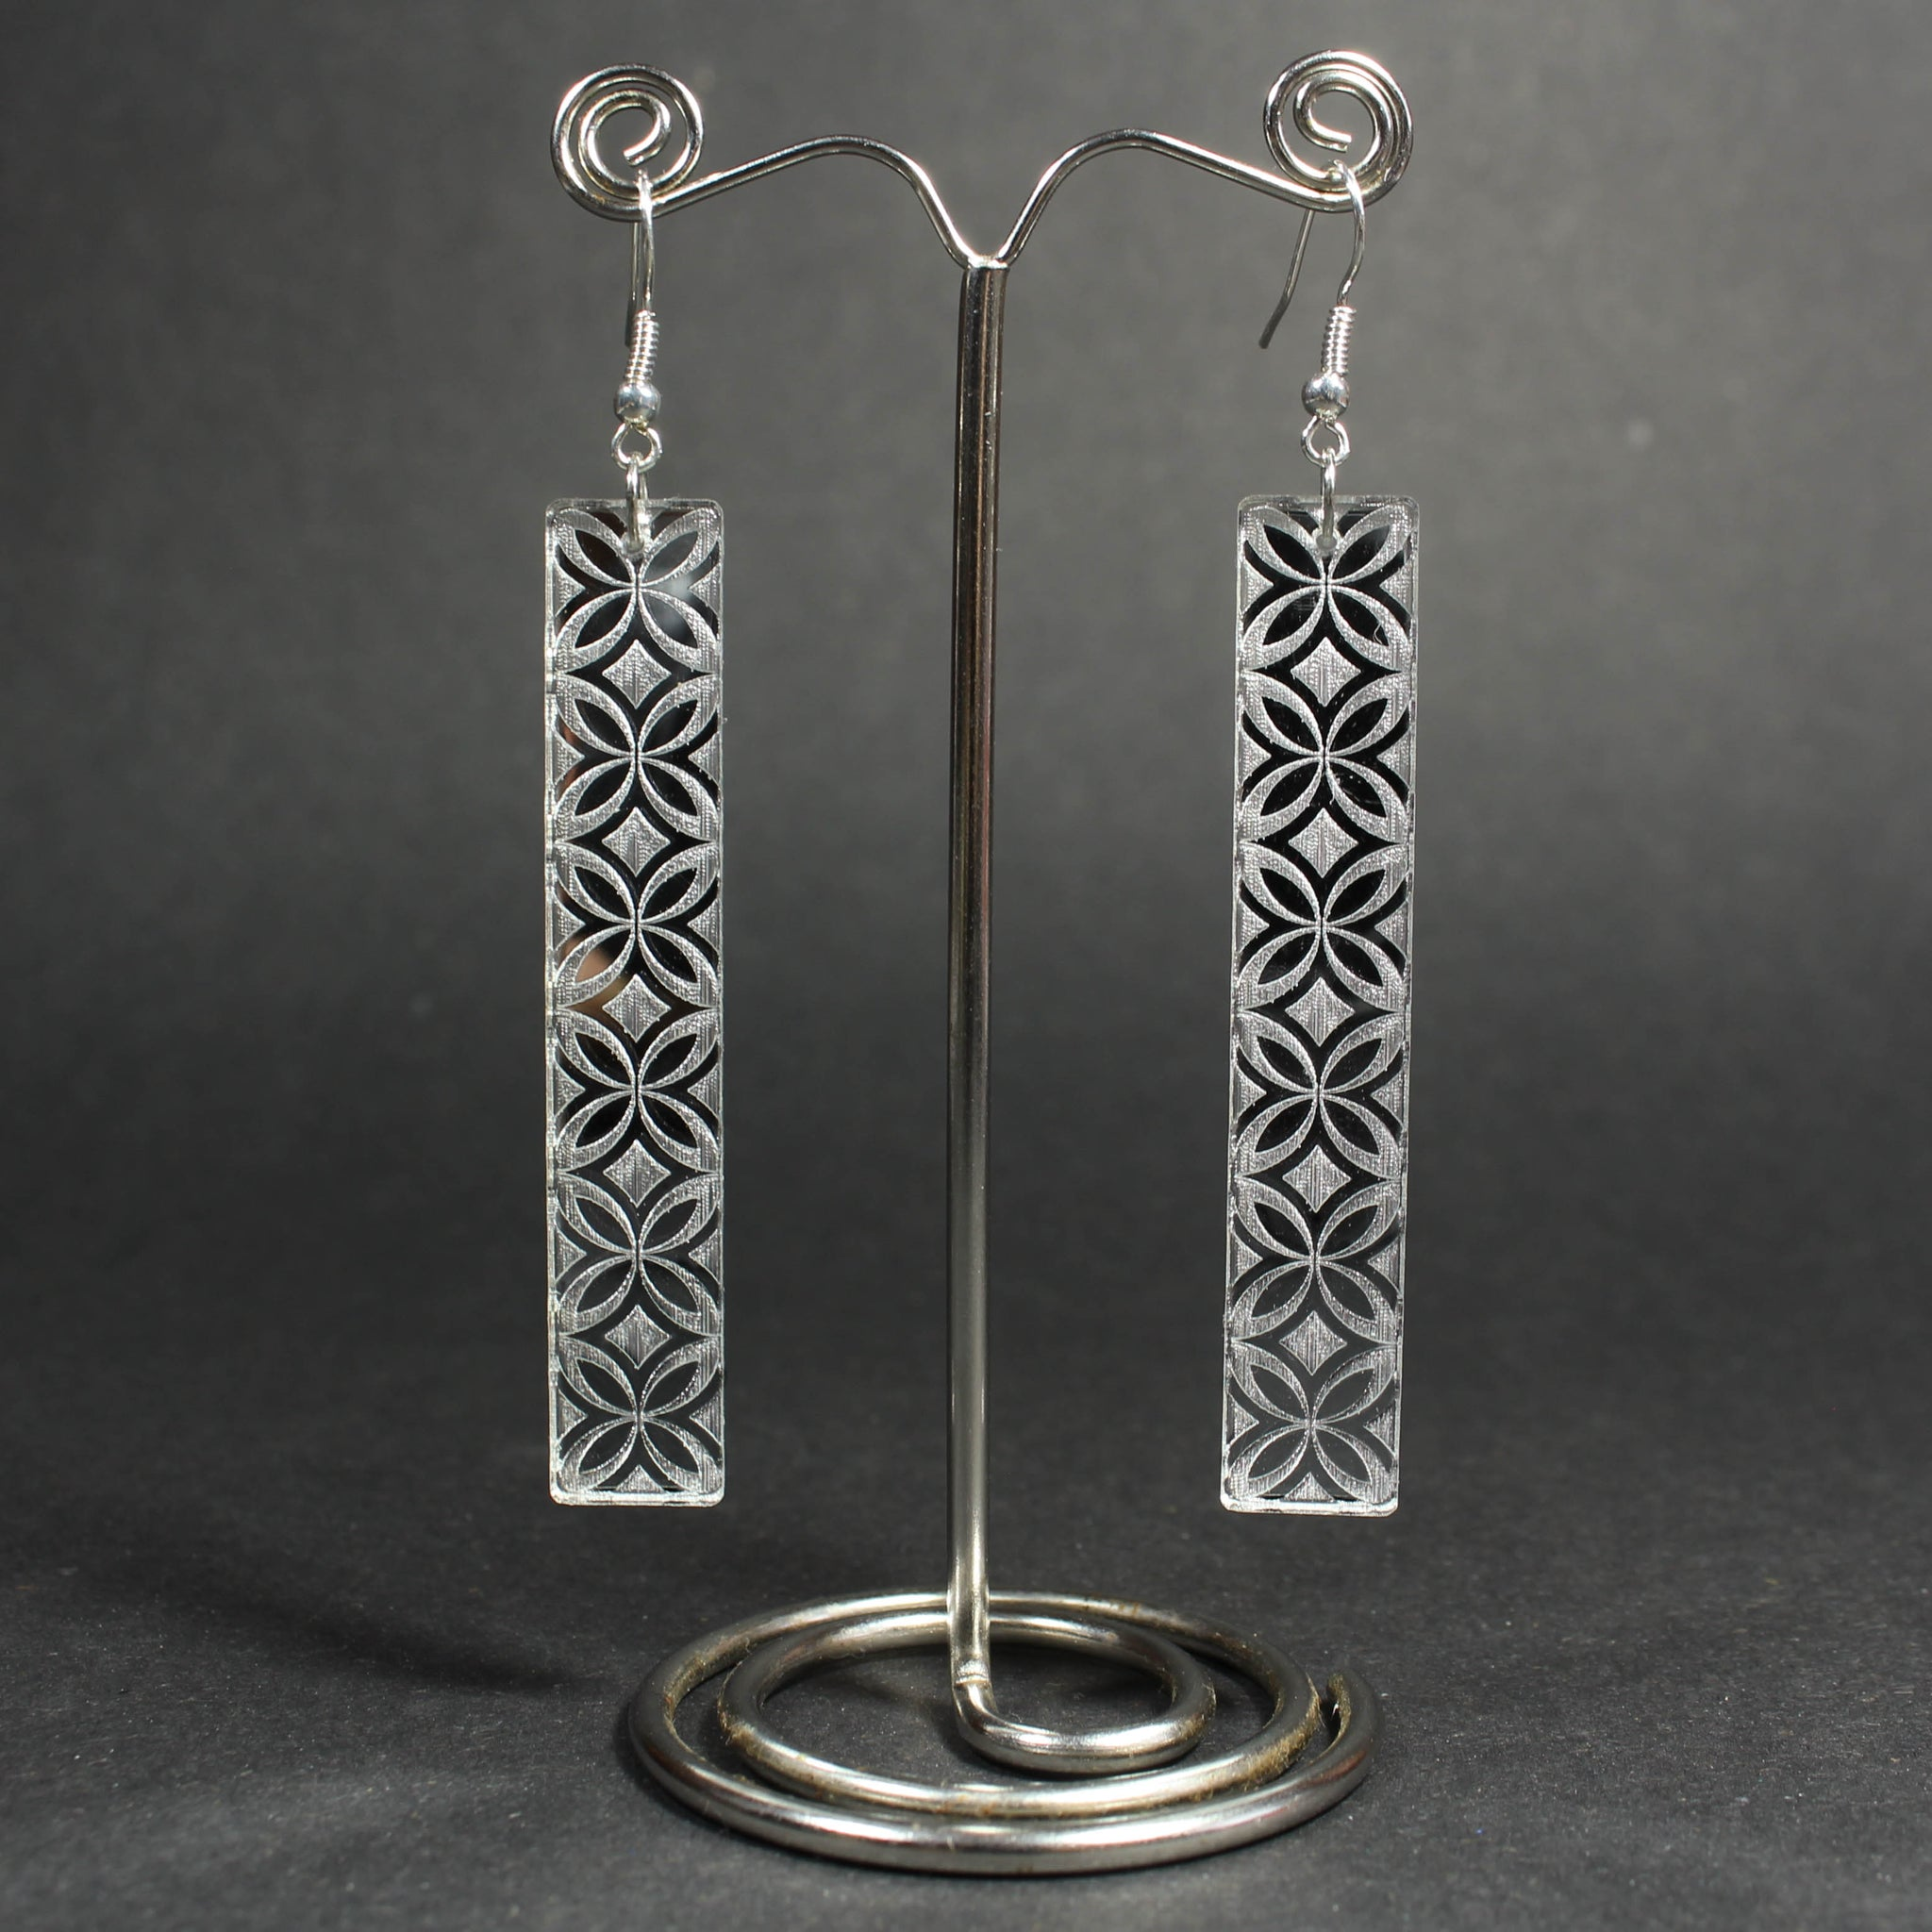 Samoan Flower Reflective Earrings